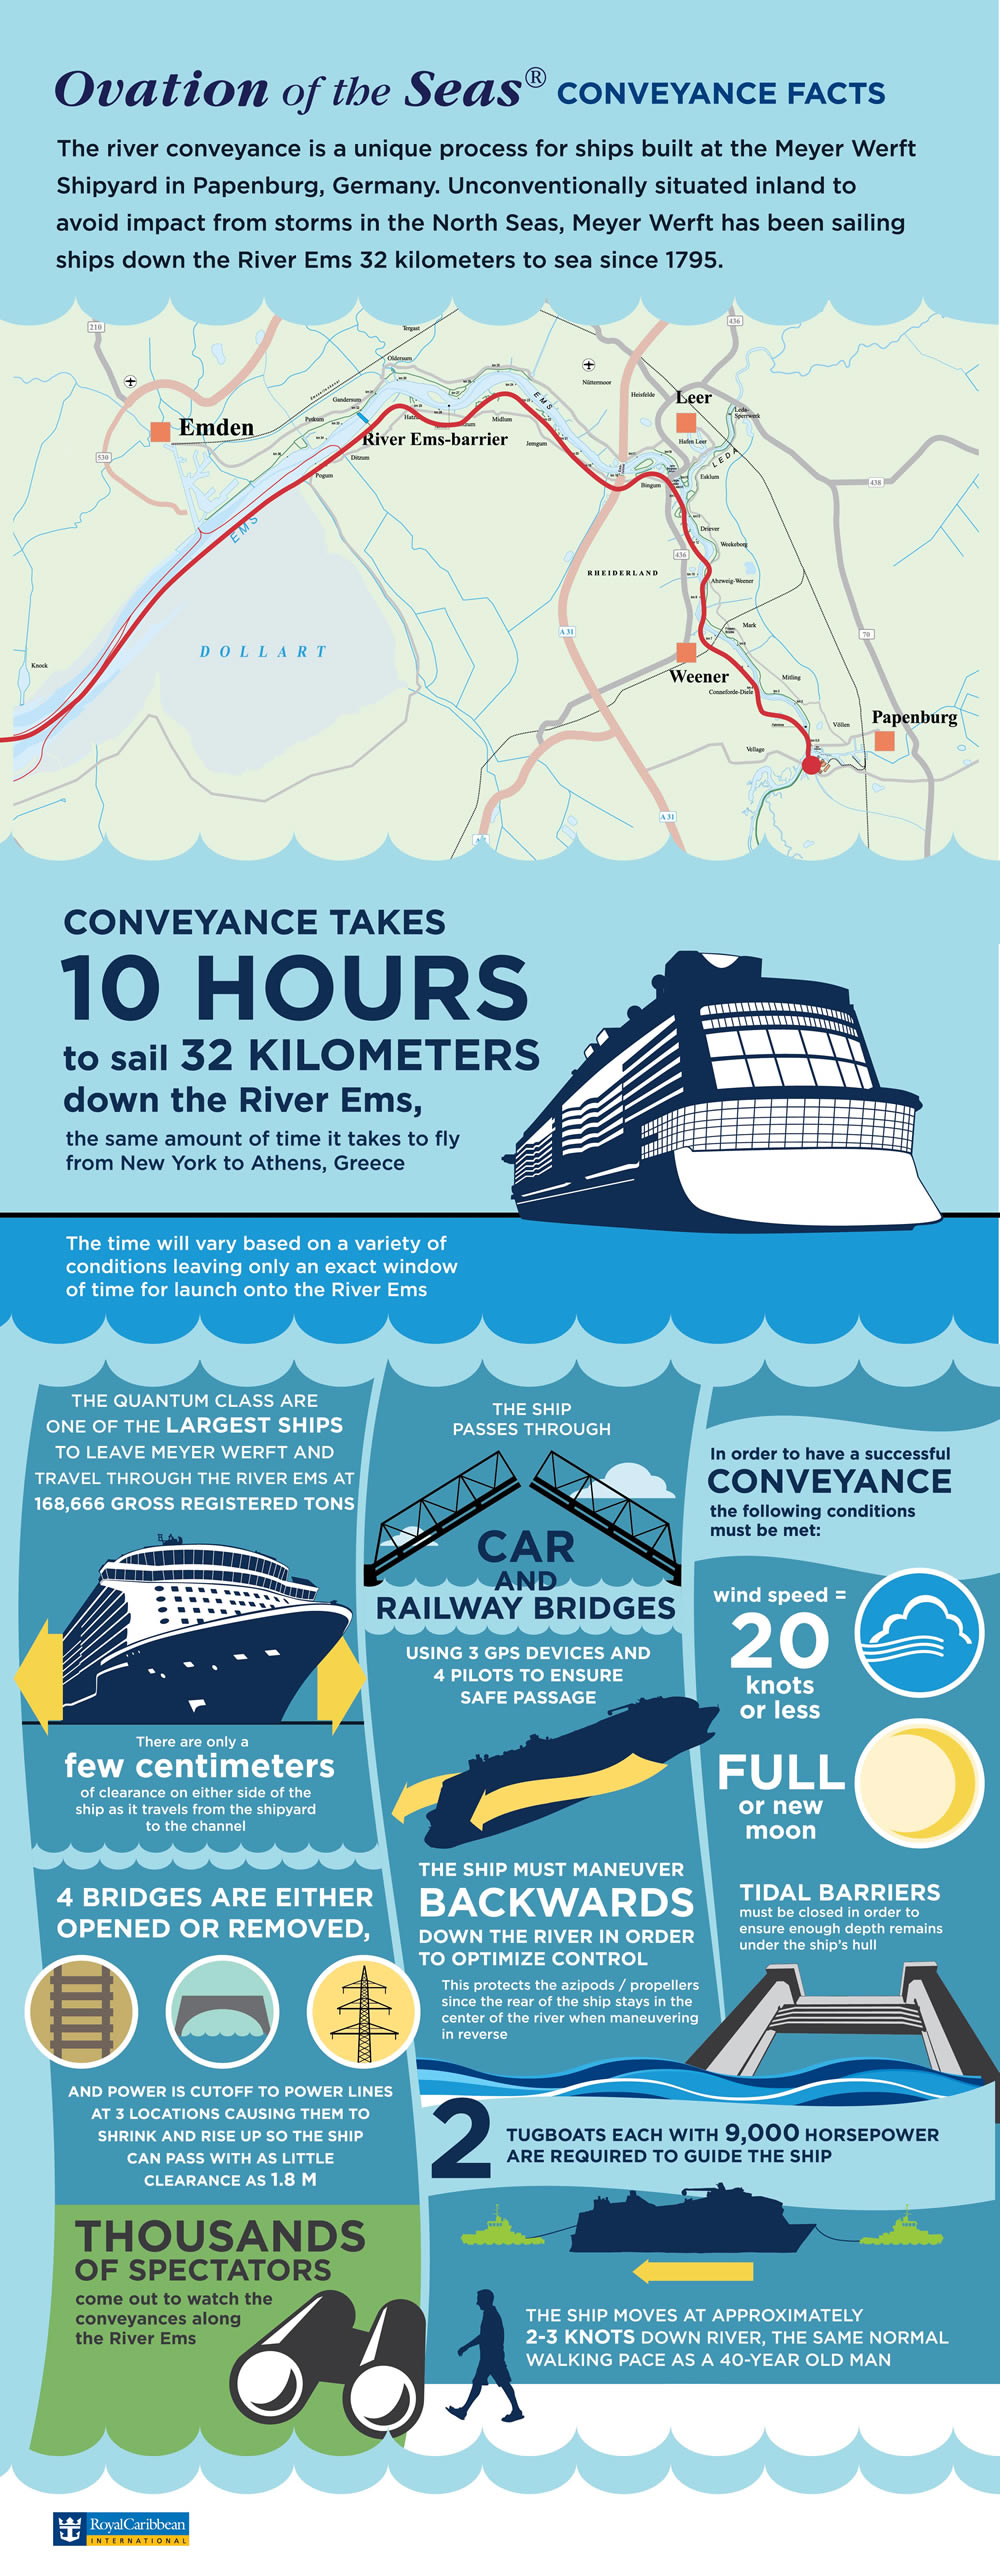 Ovation of the Seas conveyance infographic